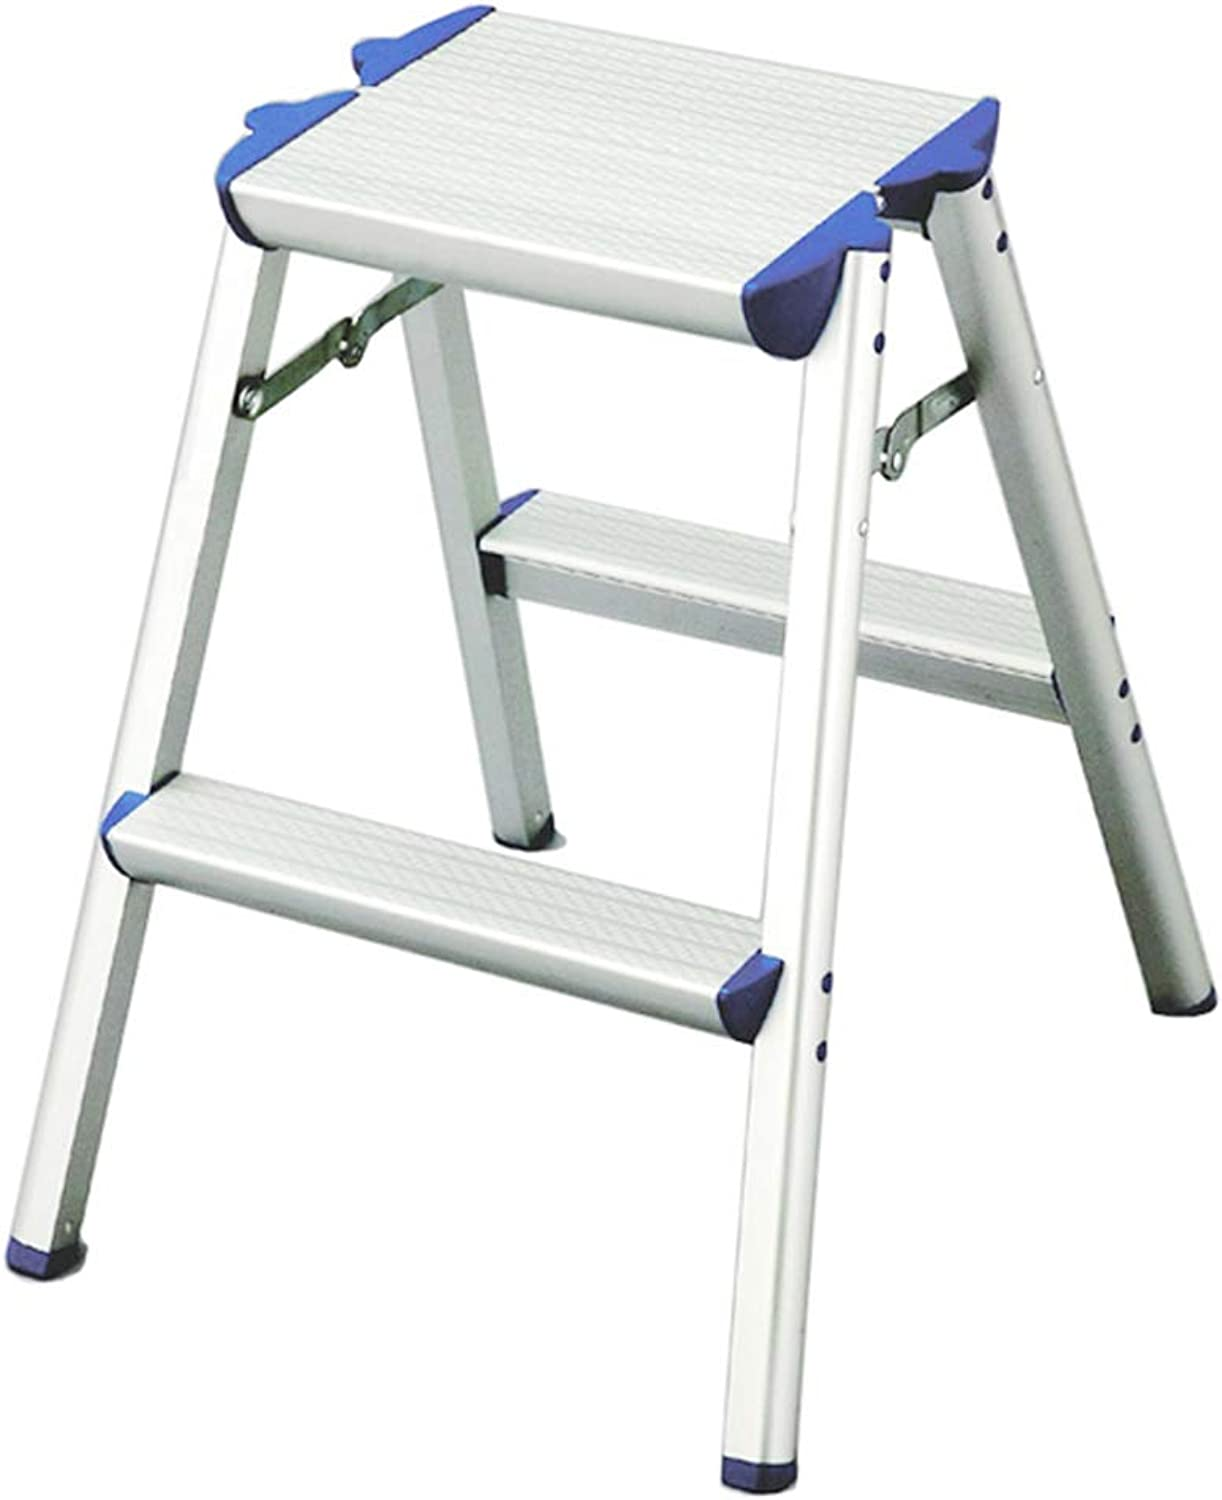 HAIPENG Step Ladder Stool Aluminum Alloy Foldable Non-Slip Dual Use Multi-Function Portable Indoor Outdoor, Silver, 2 Sizes (color   Silver, Size   2 Steps)